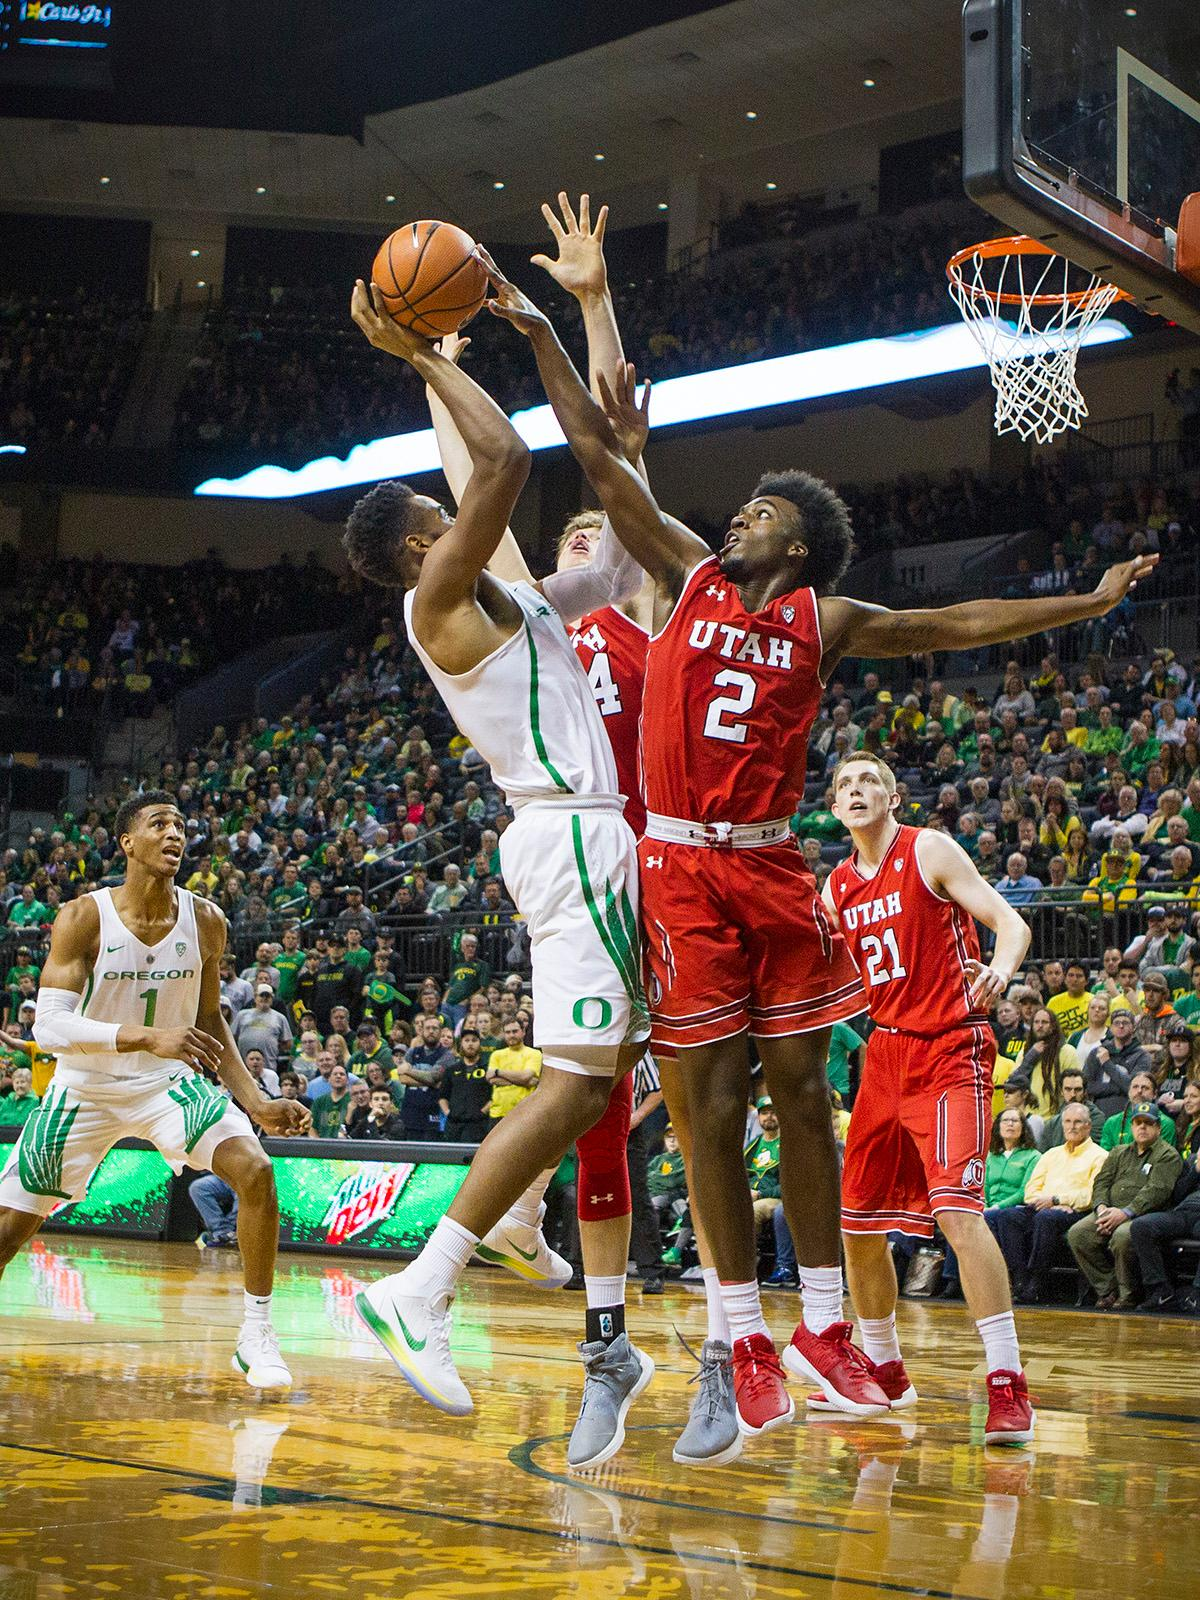 Oregon Ducks Troy Brown (#0) looks for the basket but is answered by Utah Utes Kolbe Caldwell (#2). The Utah Utes defeated the Oregon Ducks 66-56 on Friday night at Matthew Knight Arena. This is the first Pac-12 conference game loss at home for the Ducks since January of 2015. This also ended the five home game winning streak for the Ducks against the Utah Utes. Photo by Rhianna Gelhart, Oregon News Lab